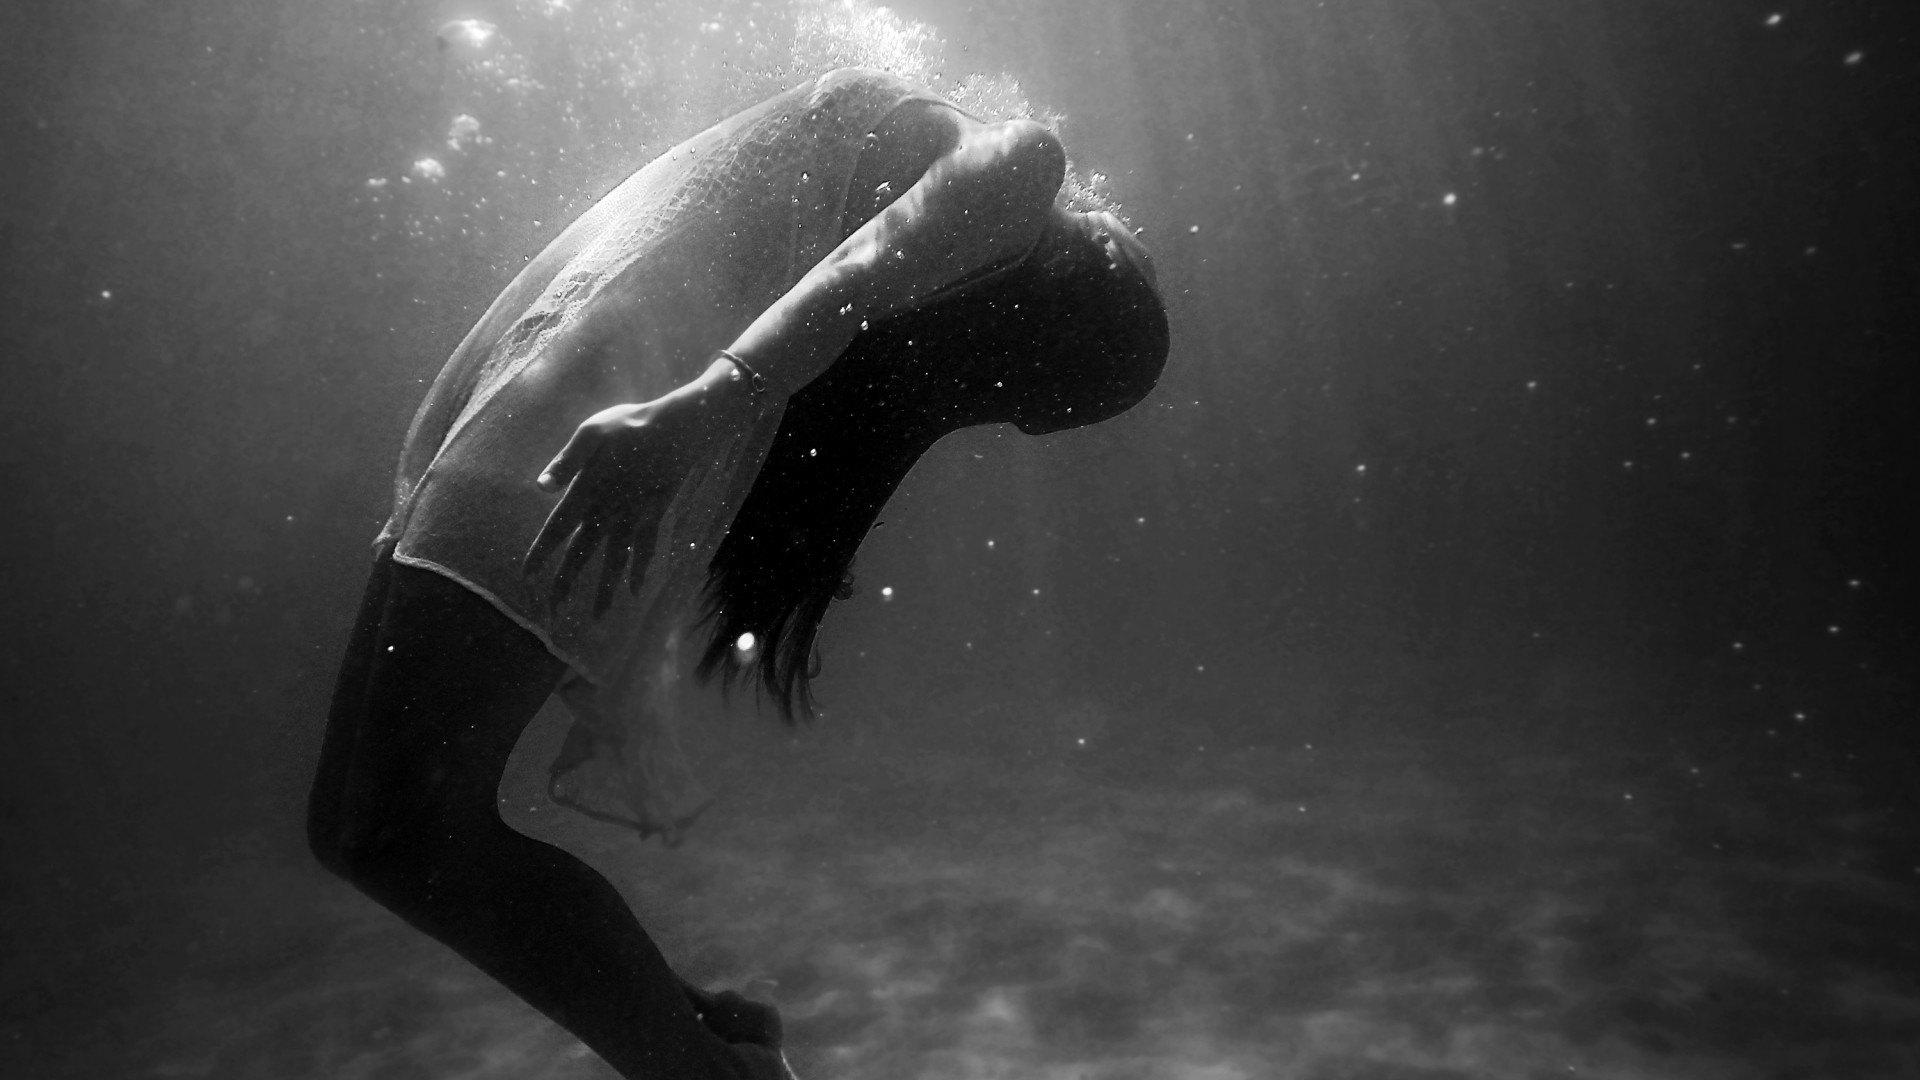 Drowning Inside Herself Hd Wallpaper For Desktop And Mobiles